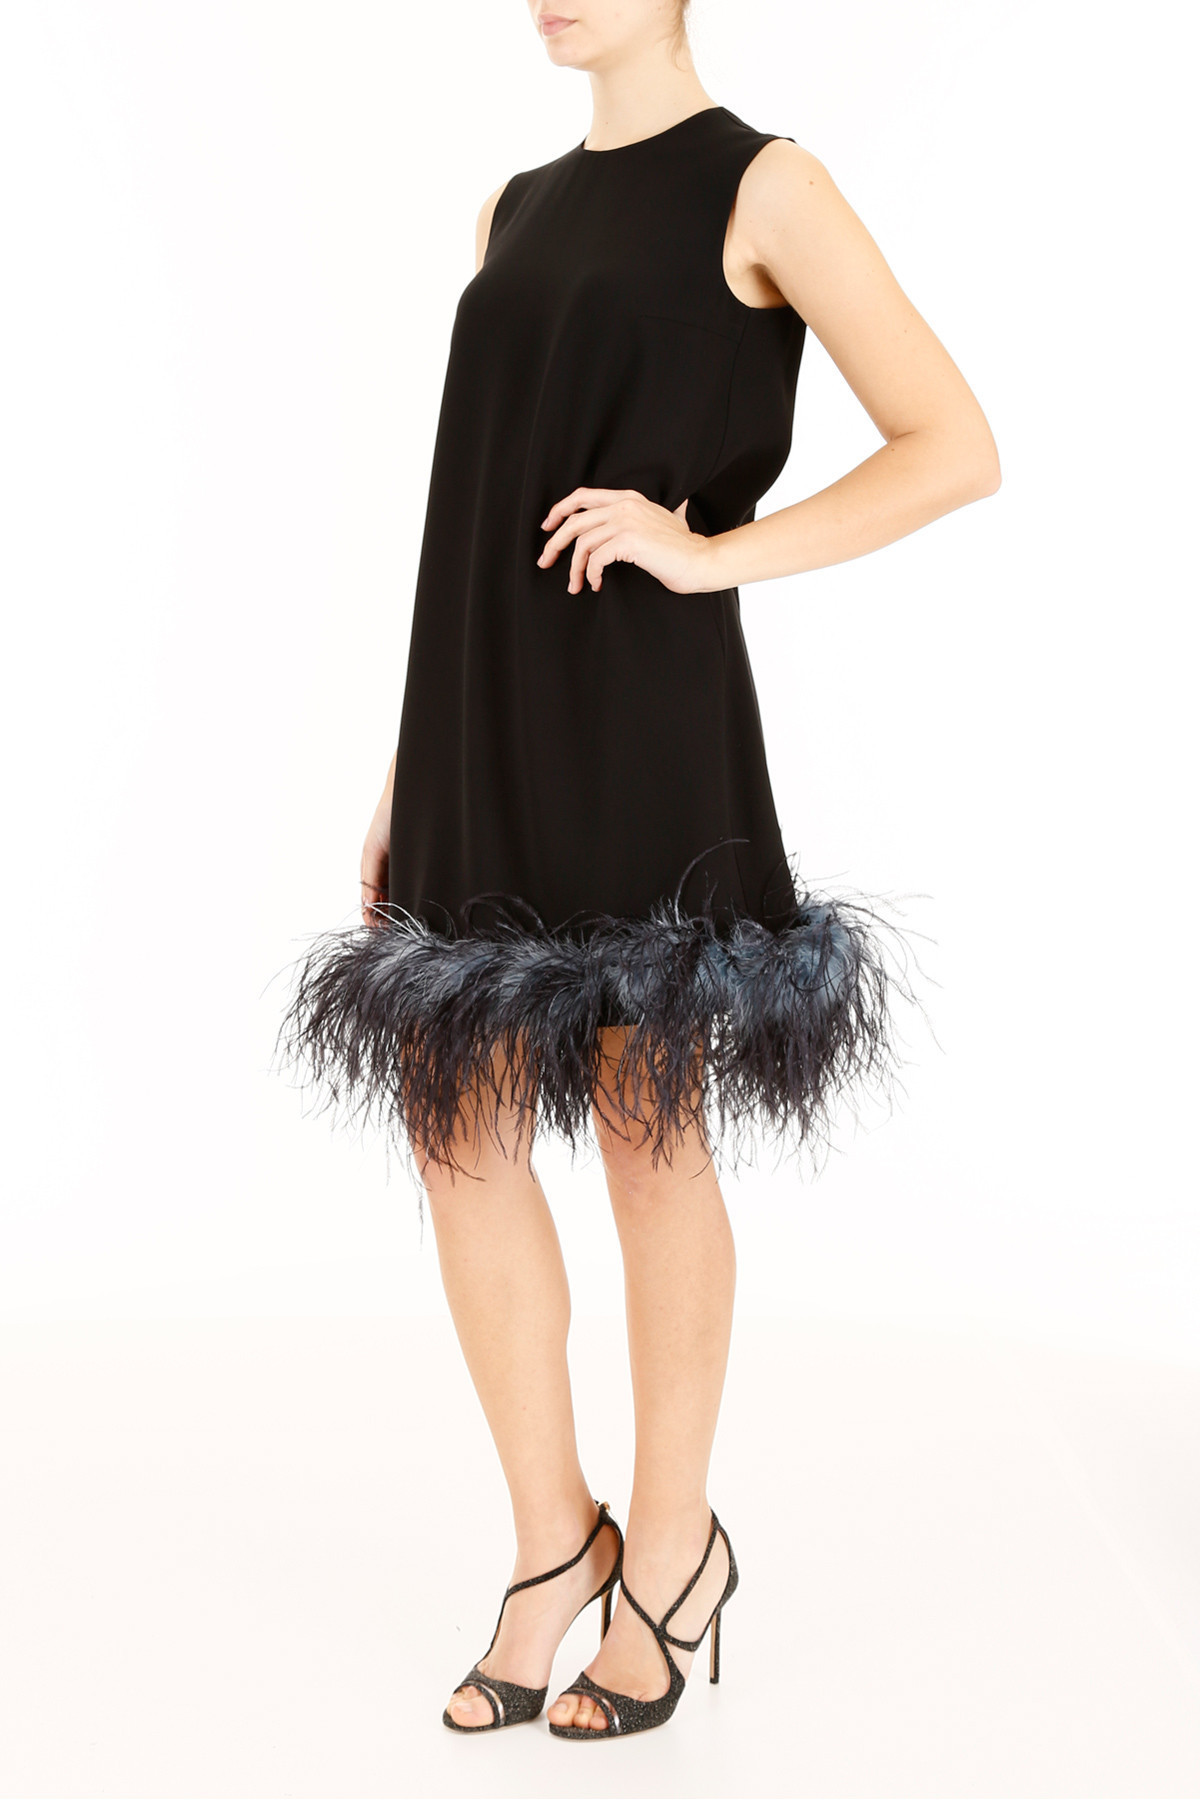 PRADA Sable satin A-line dress with Ostrich feathers